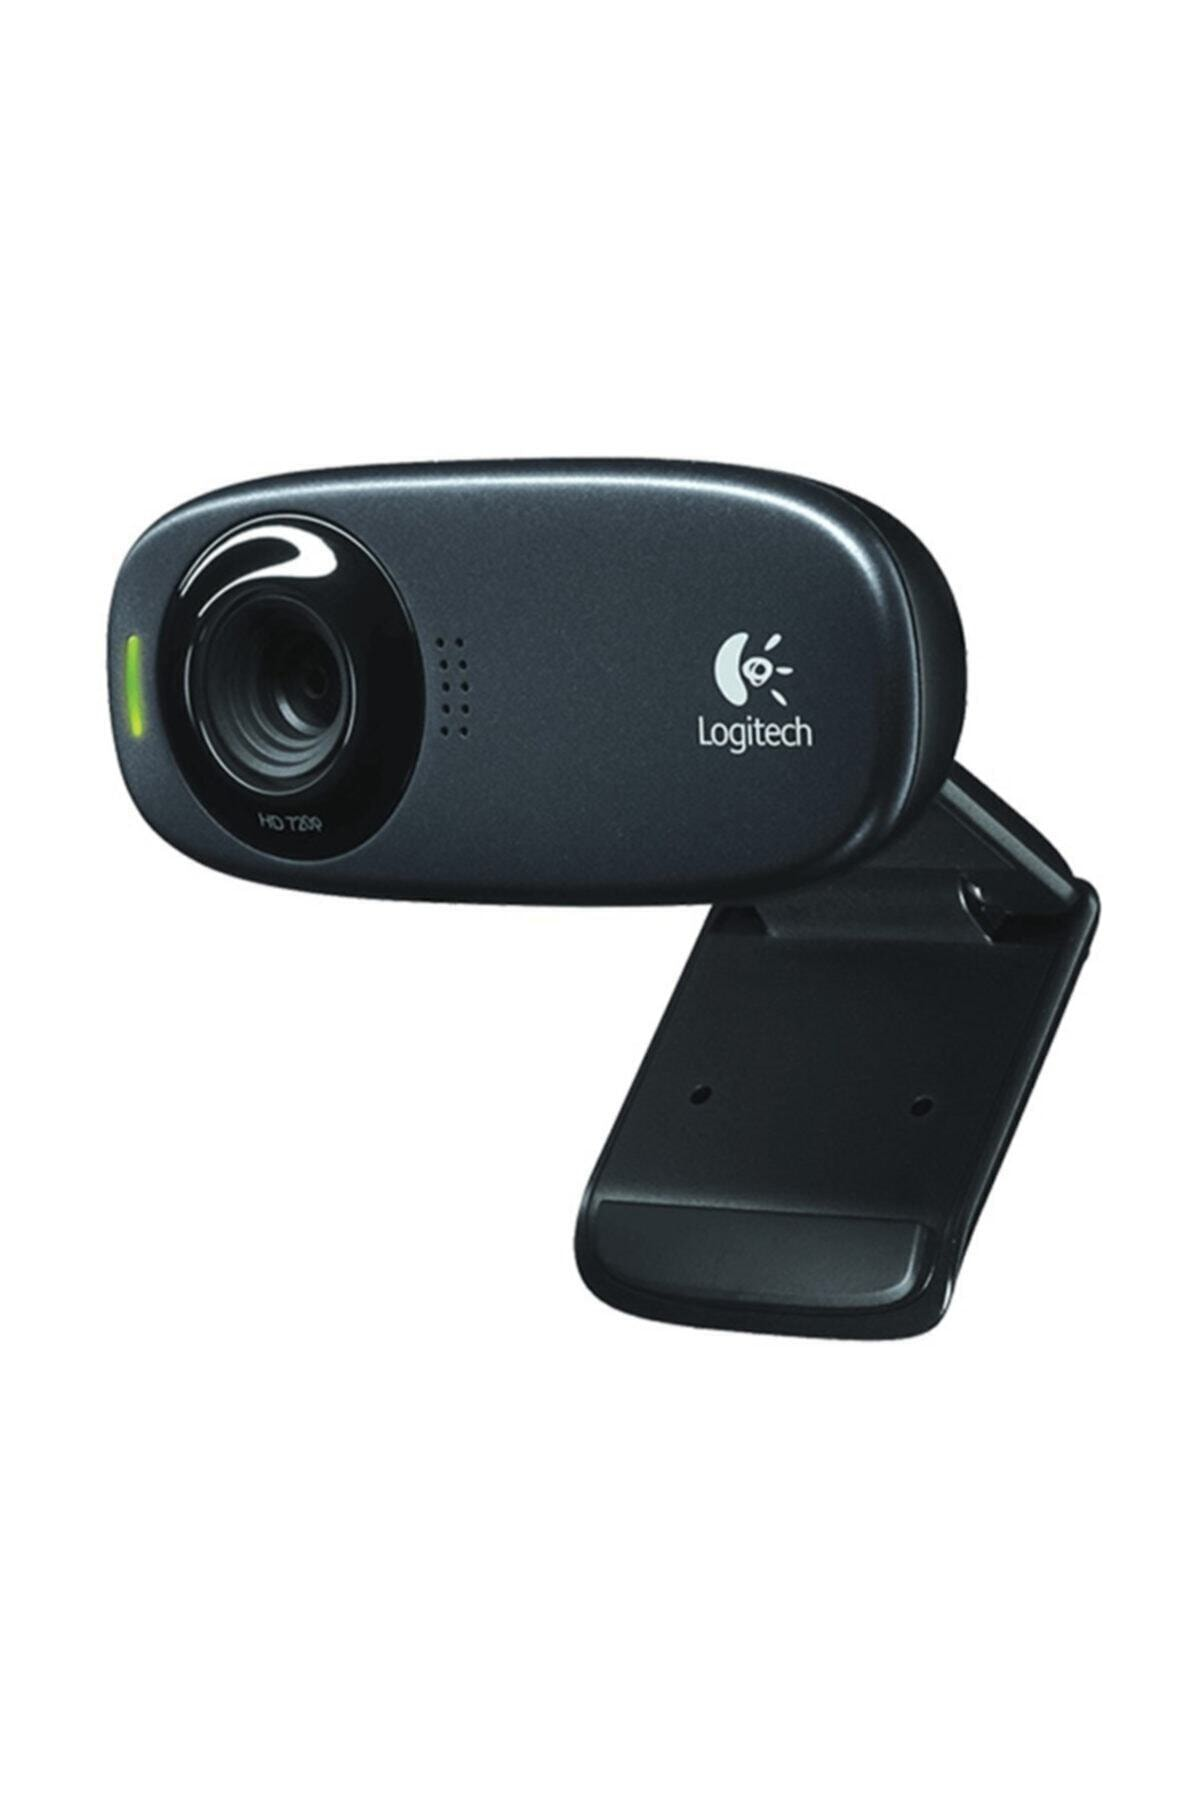 logitech C310 Hd 720p Dahili Mikrofon Usb Webcam 960-001065 1